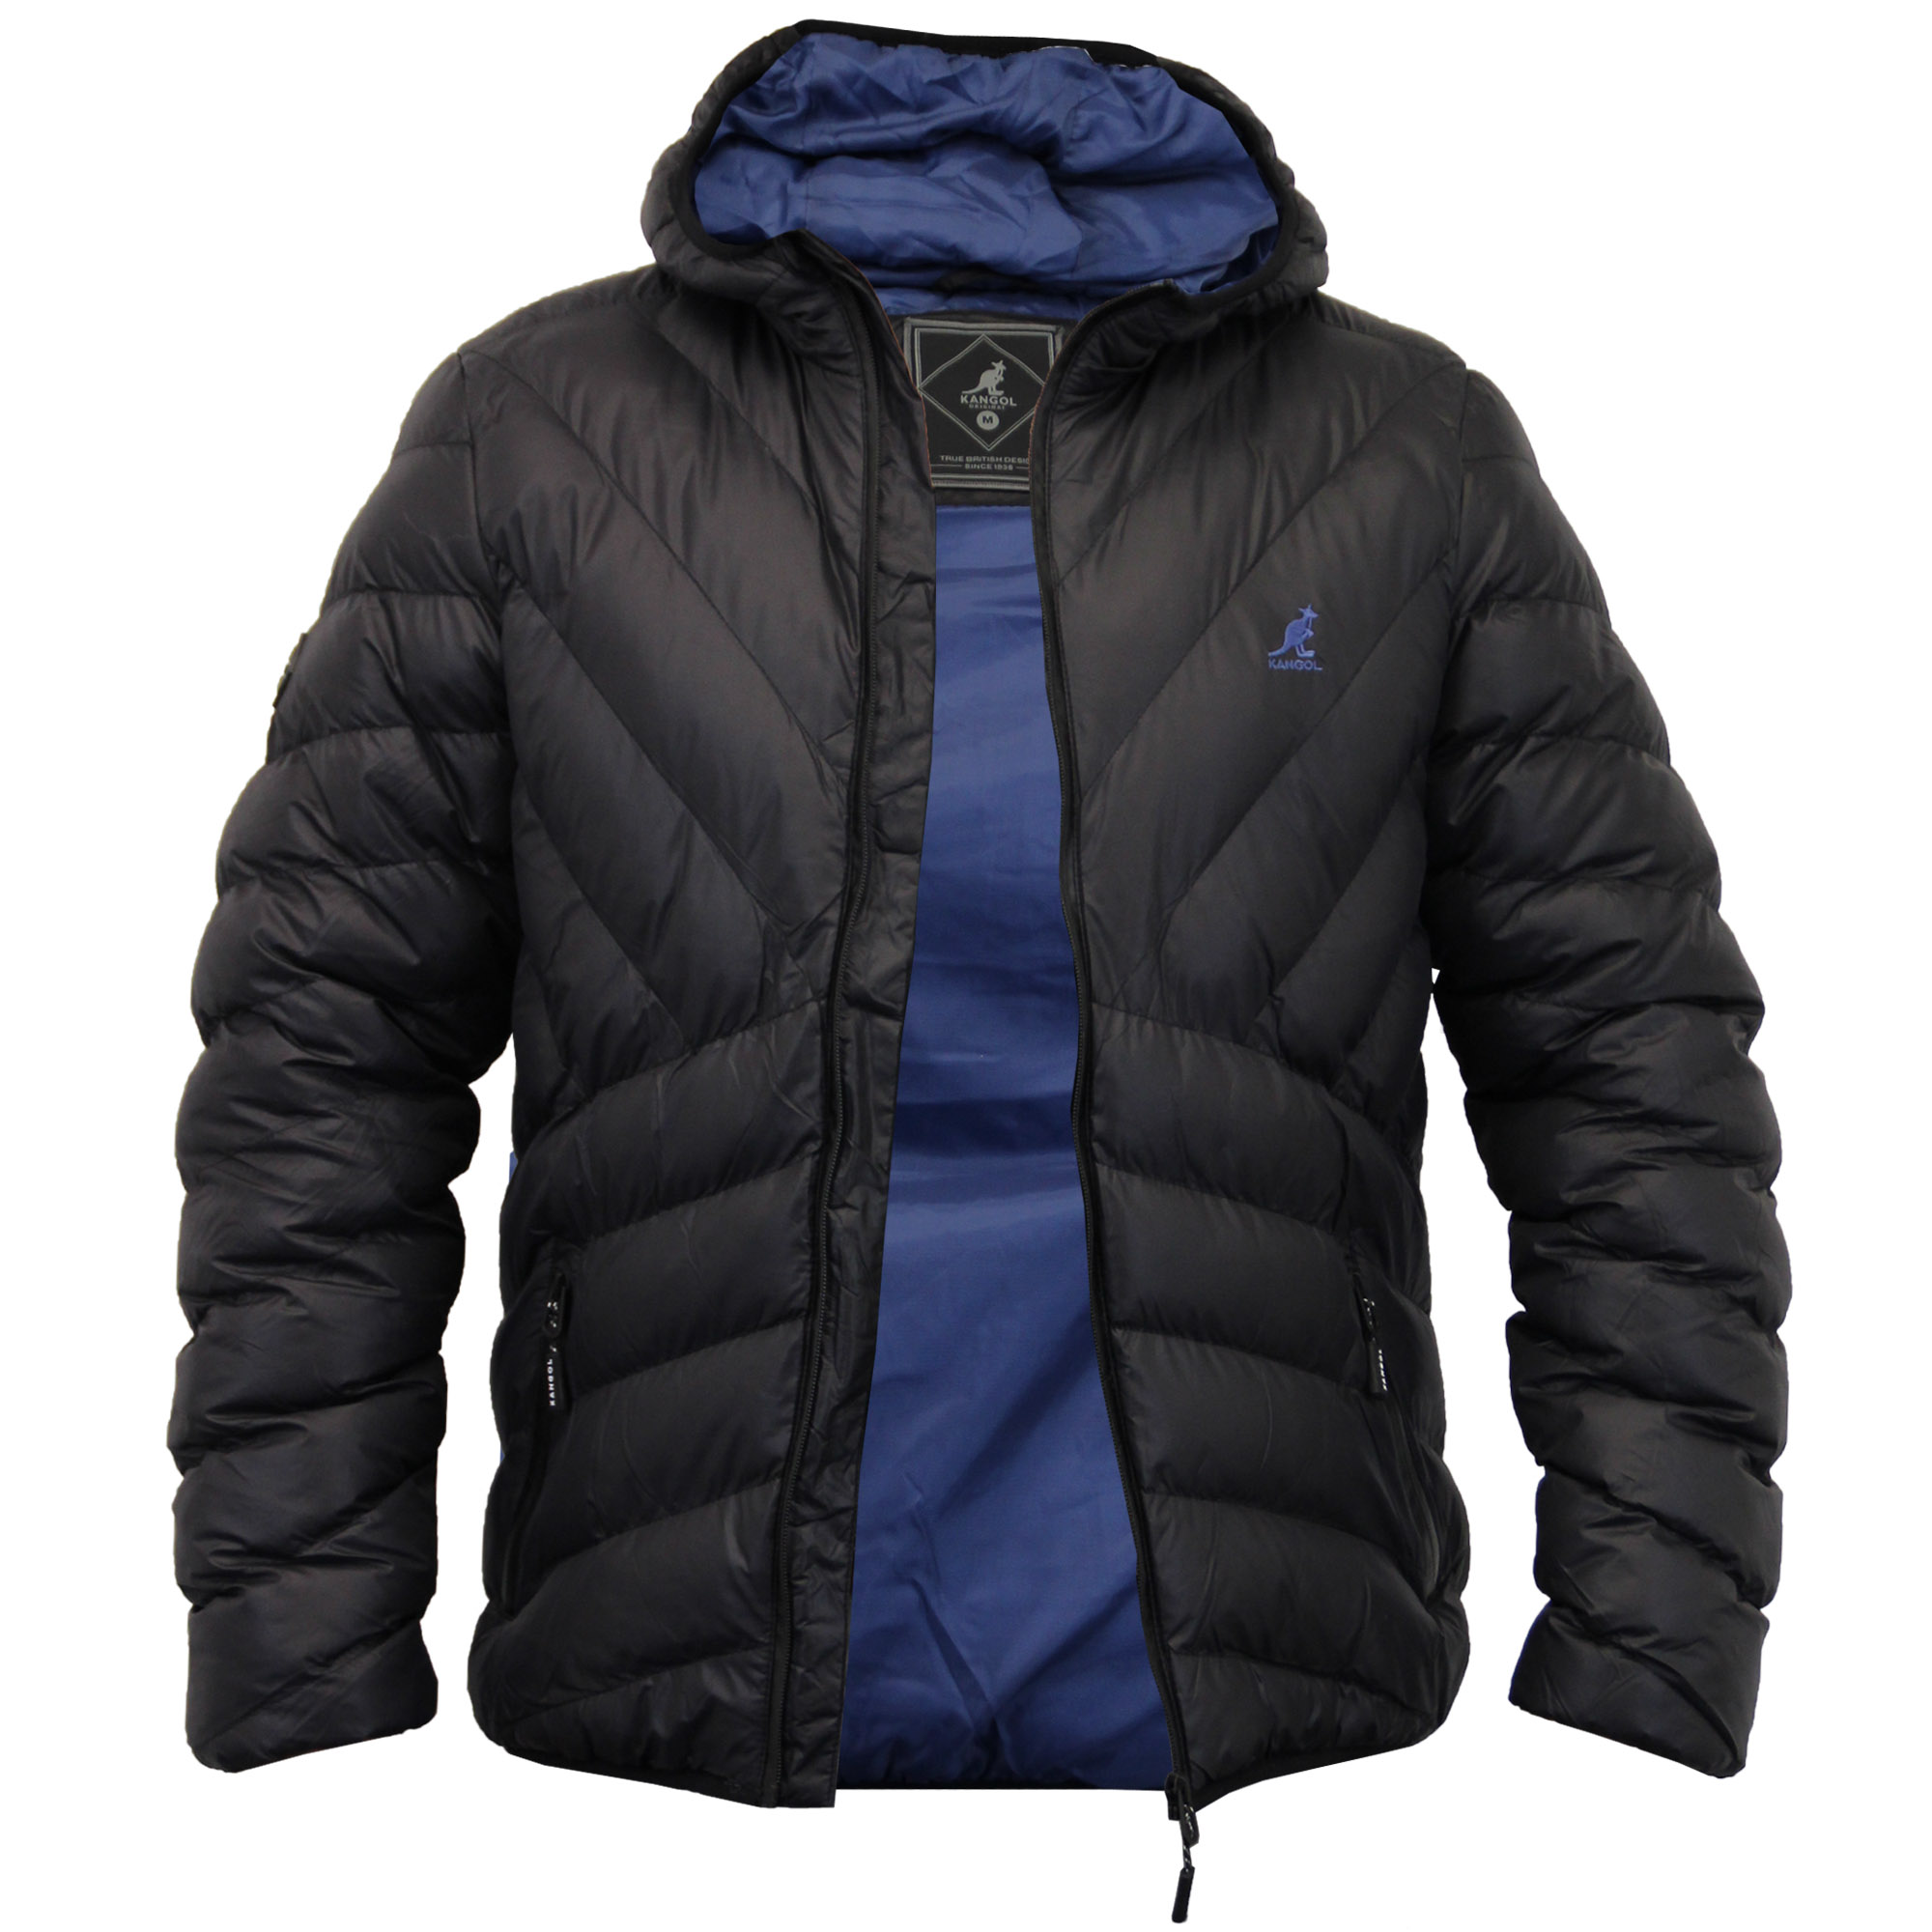 Mens Jacket Kangol Coat Padded Quilted Hooded Puffer ...